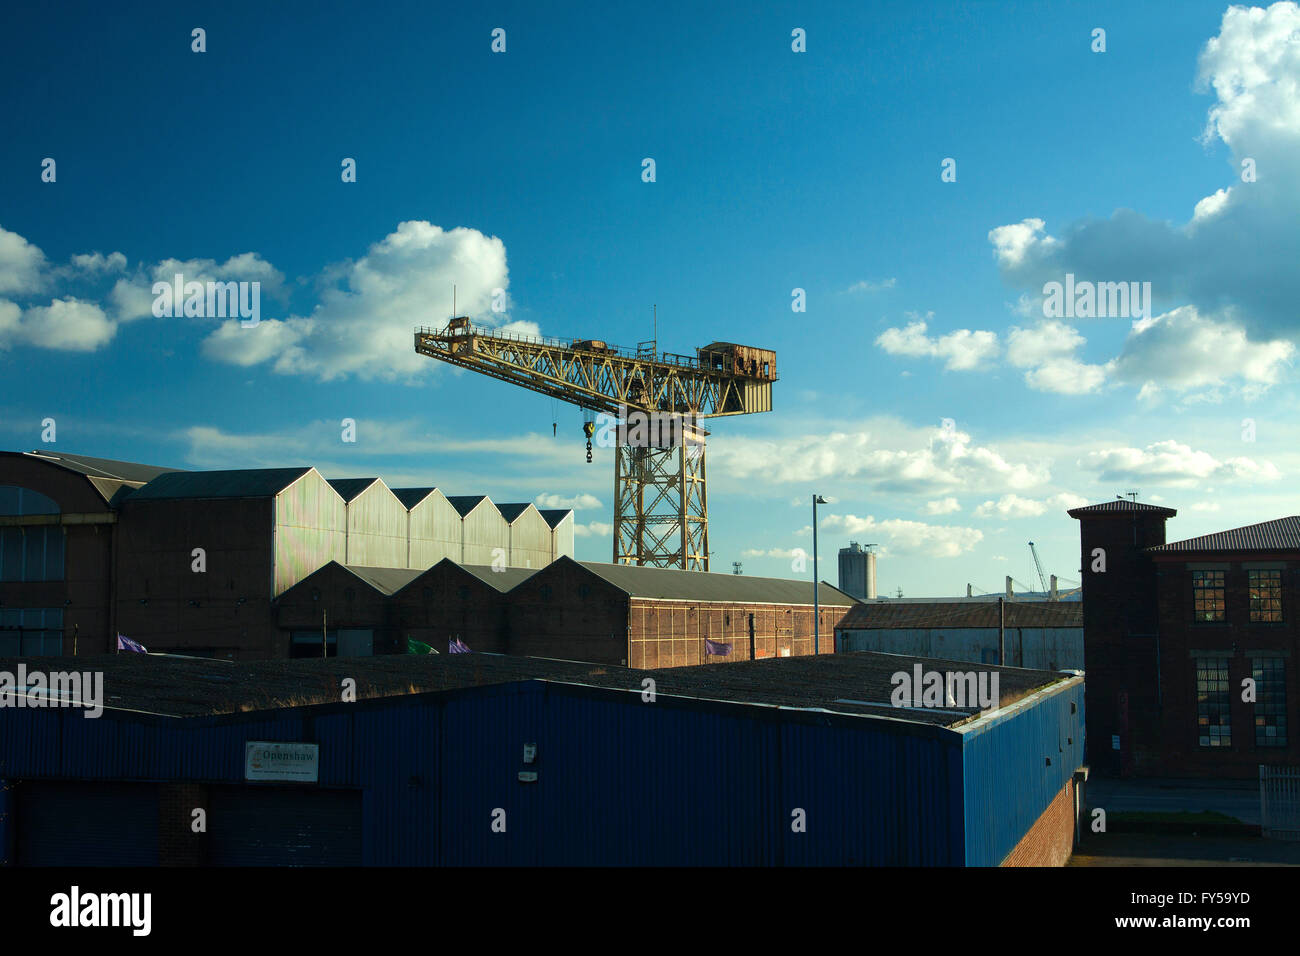 The Barclay Curle Titan Crane, Whiteinch, Glasgow - Stock Image